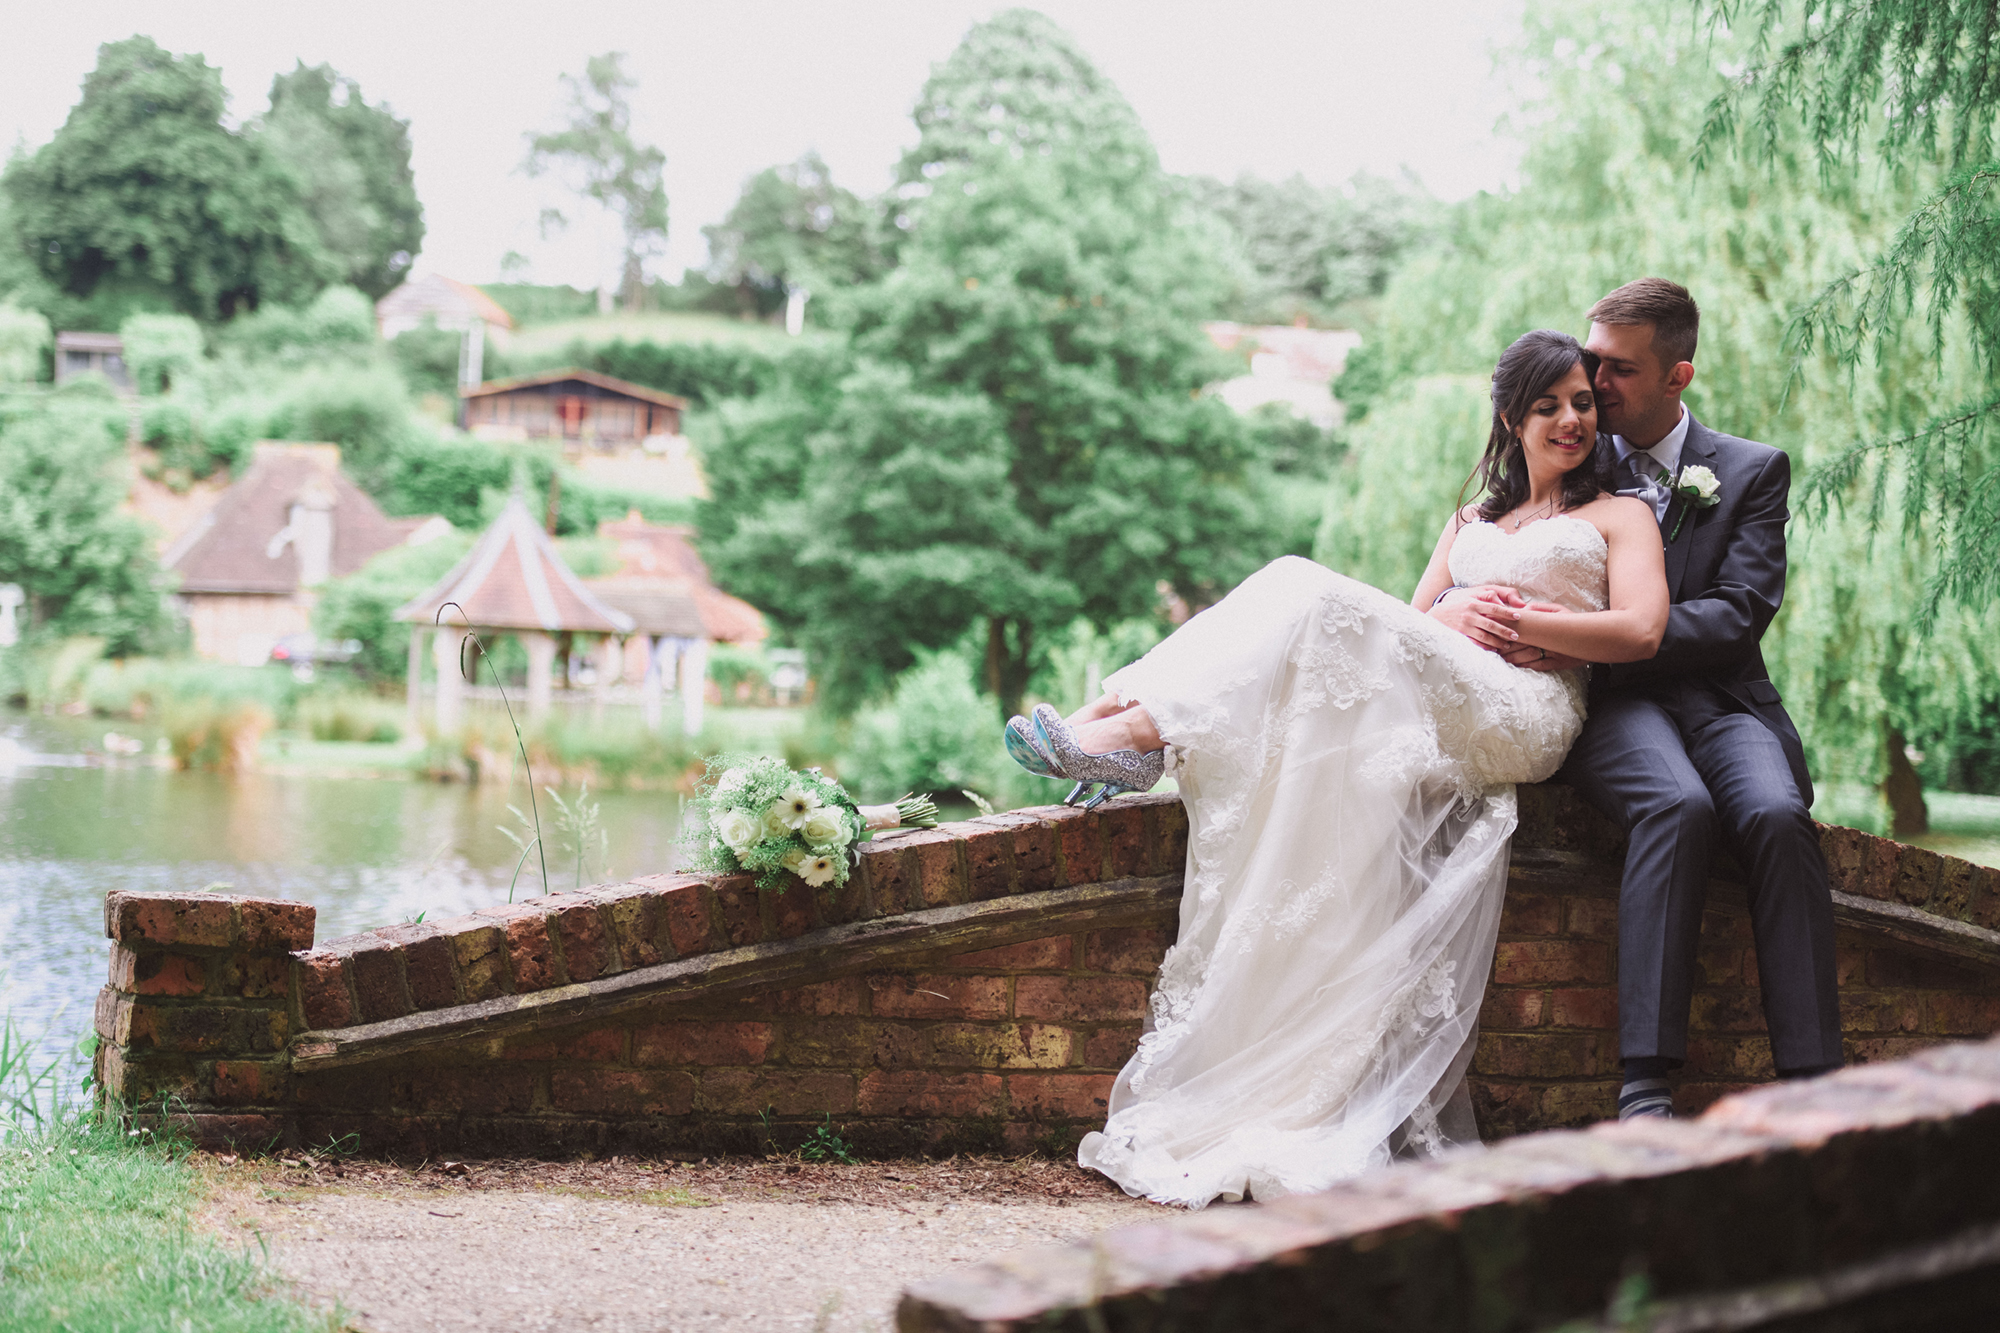 wedding photography by sussex photographer